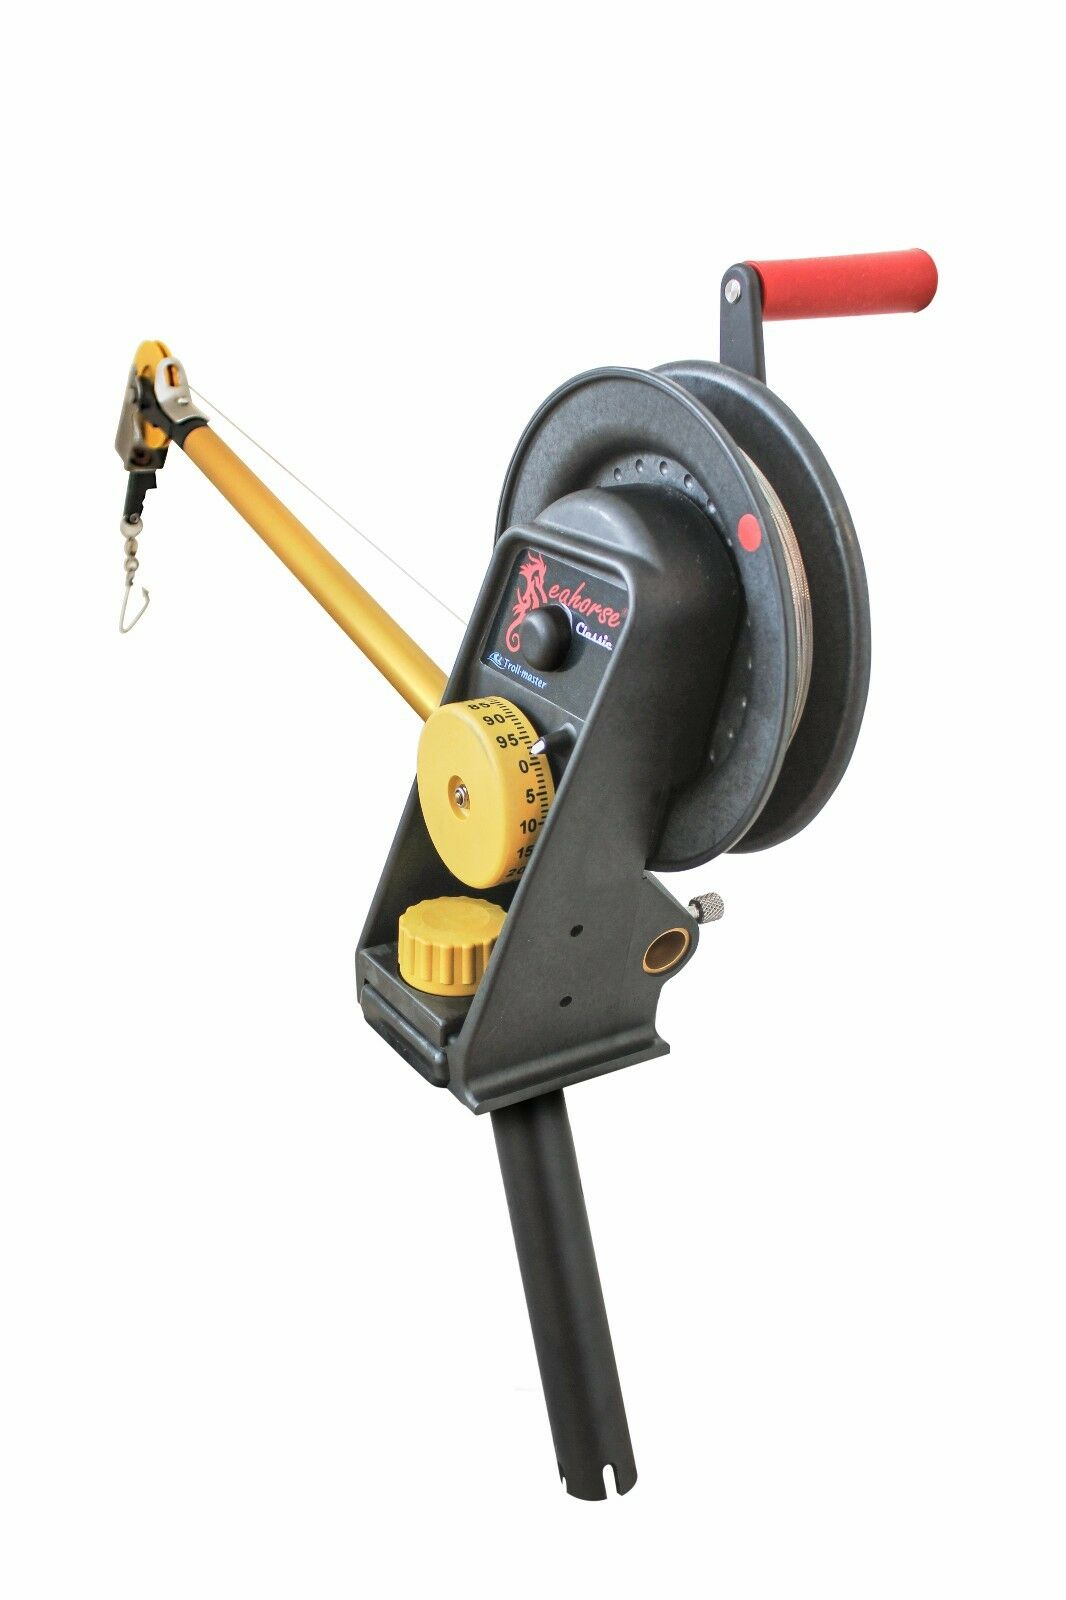 Seahorse Manual Downrigger System with Gimbal Mount by Troll-master